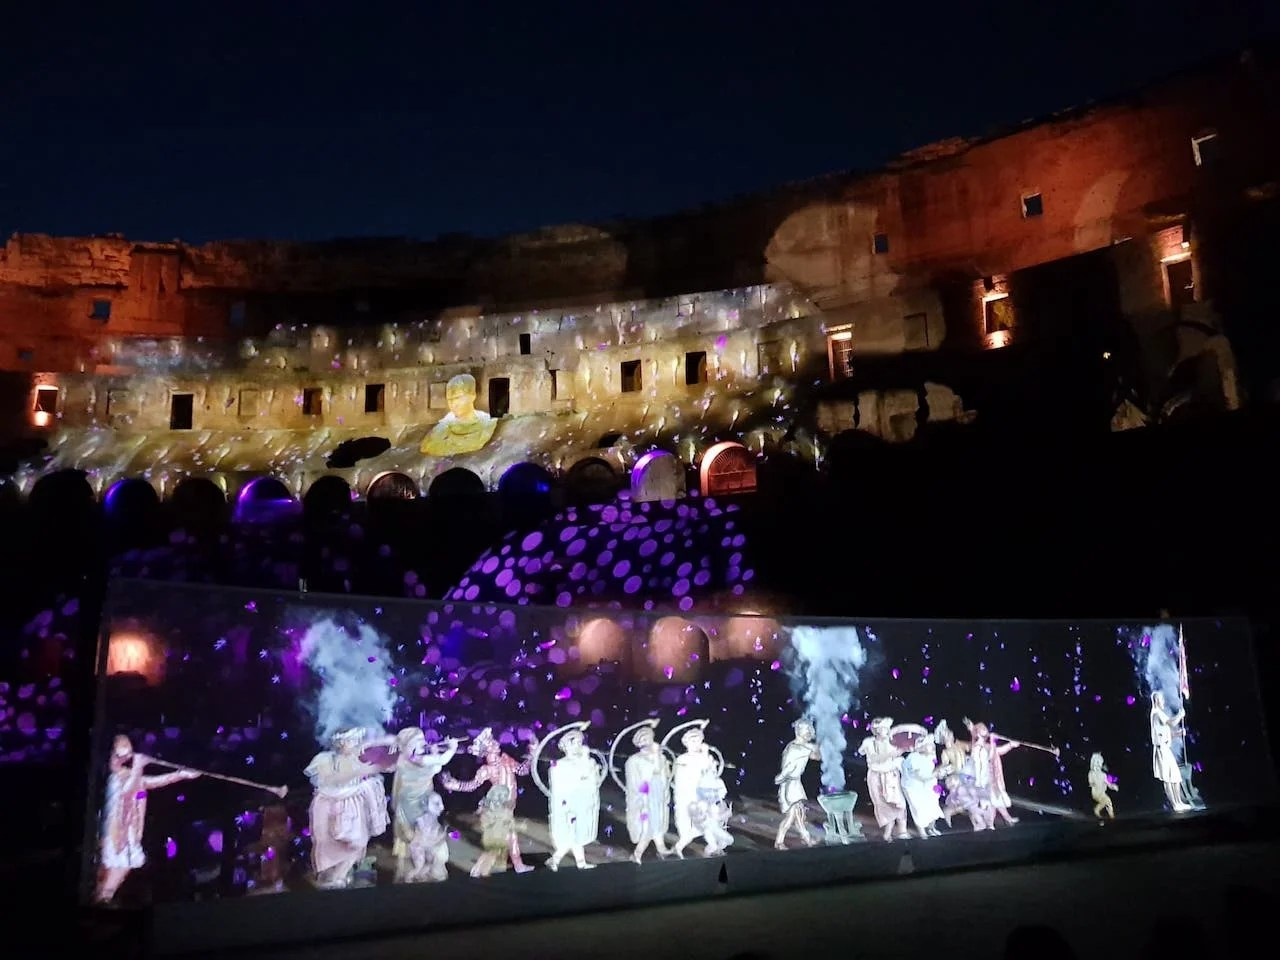 Experience the Opening Games at the Colosseum Just Like the Ancient Romans Did